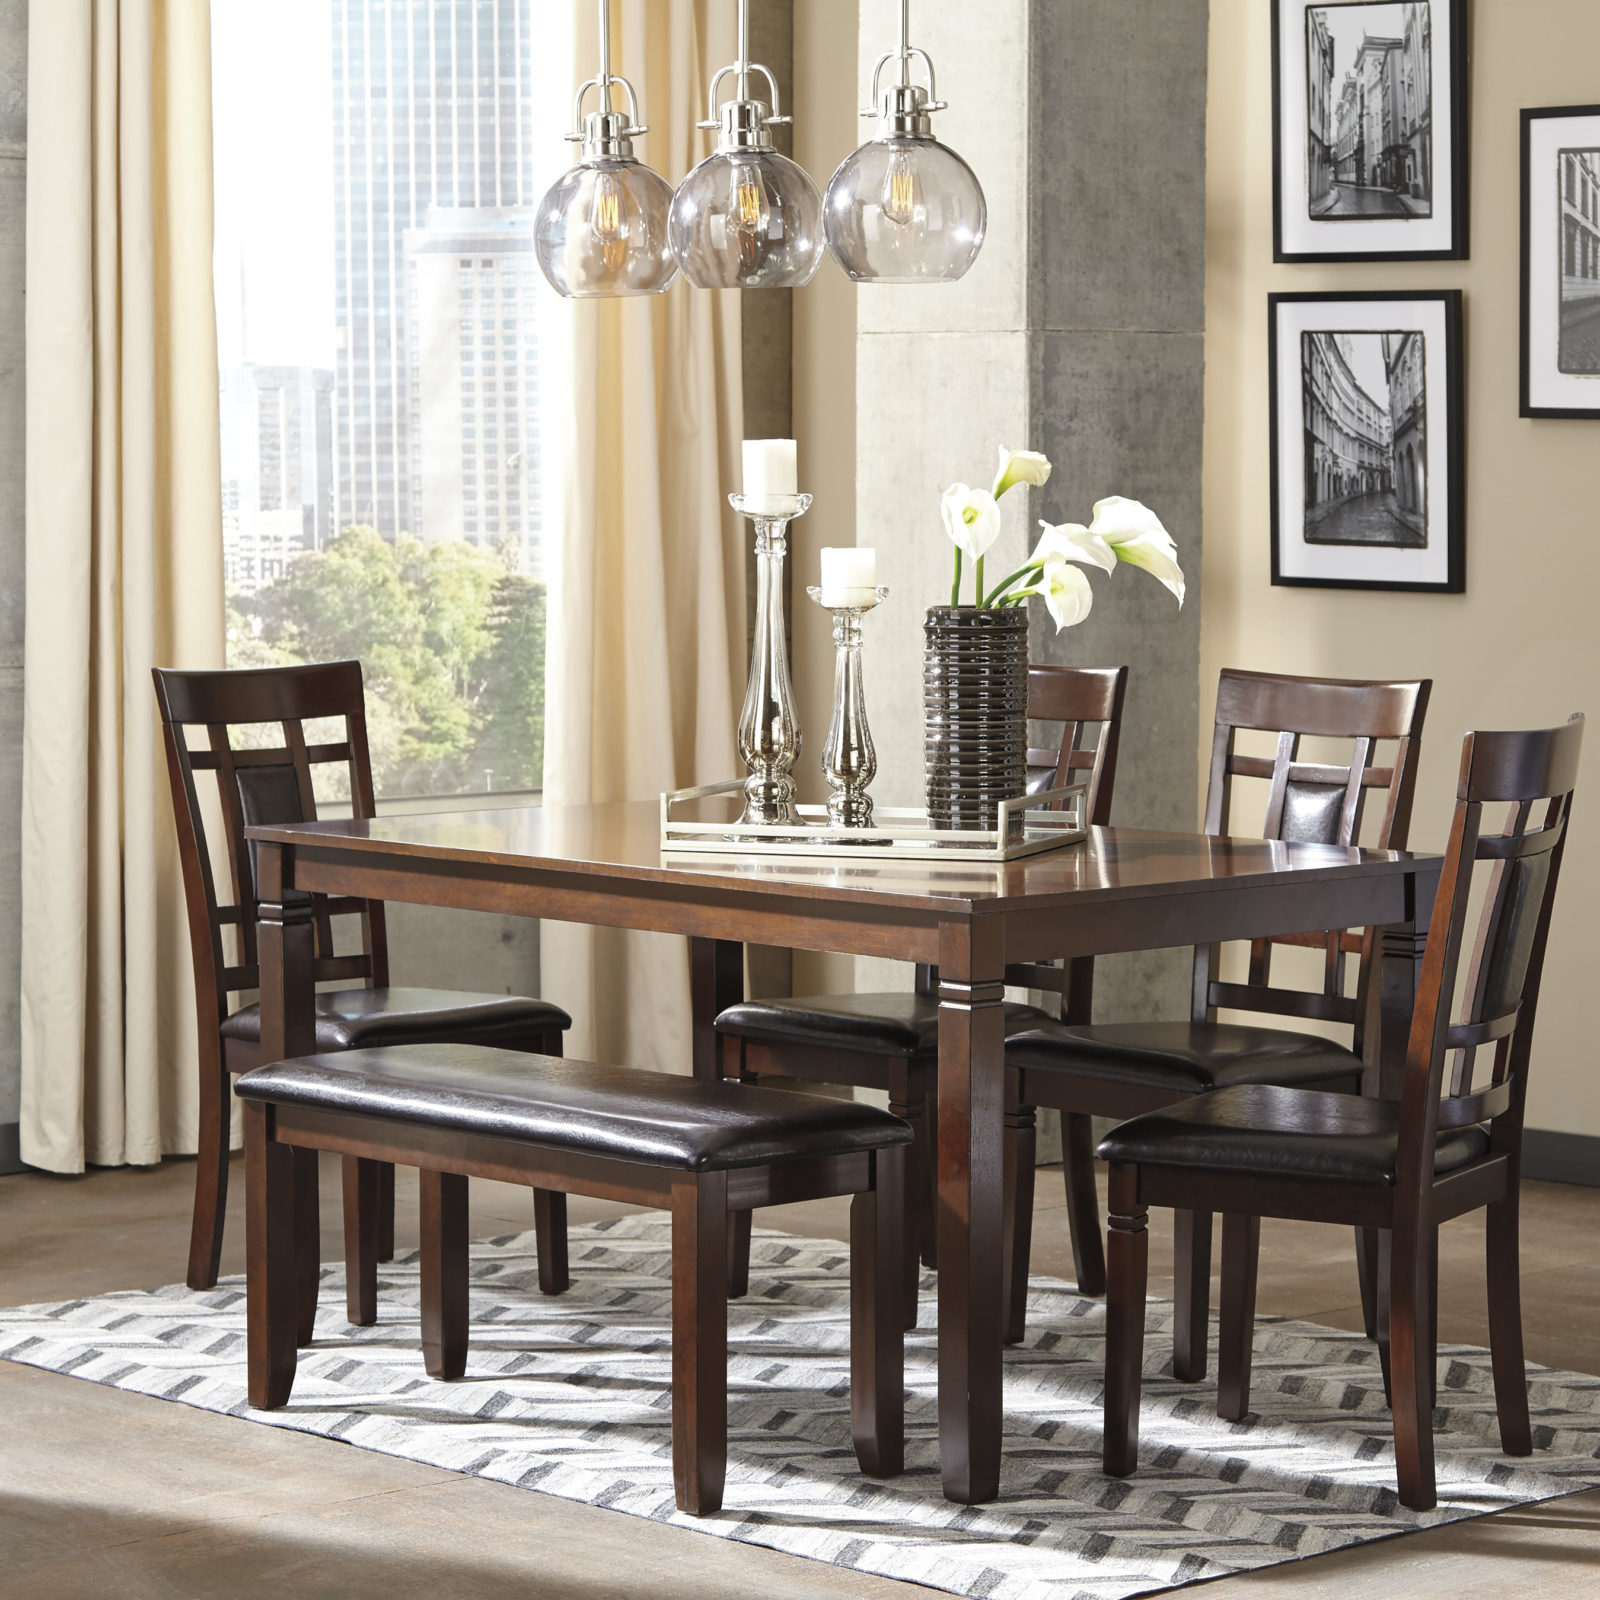 Aid Home Design 6 Piece Dining Set Ft Myers Outdoor Furniture Stores Outdoor Furniture Stores